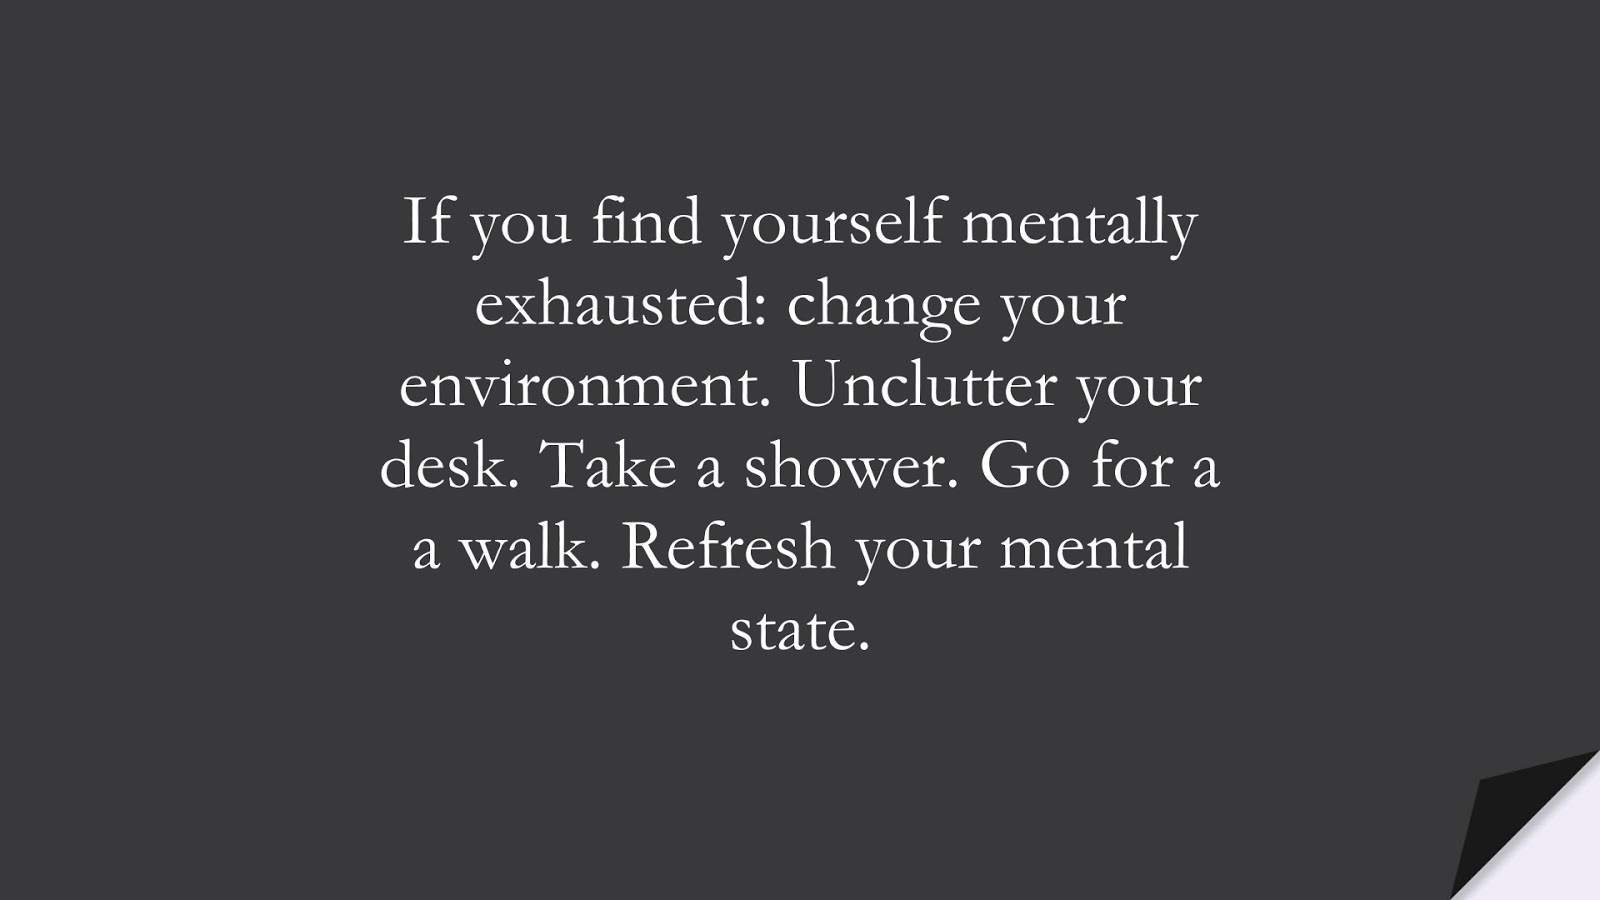 If you find yourself mentally exhausted: change your environment. Unclutter your desk. Take a shower. Go for a a walk. Refresh your mental state.FALSE